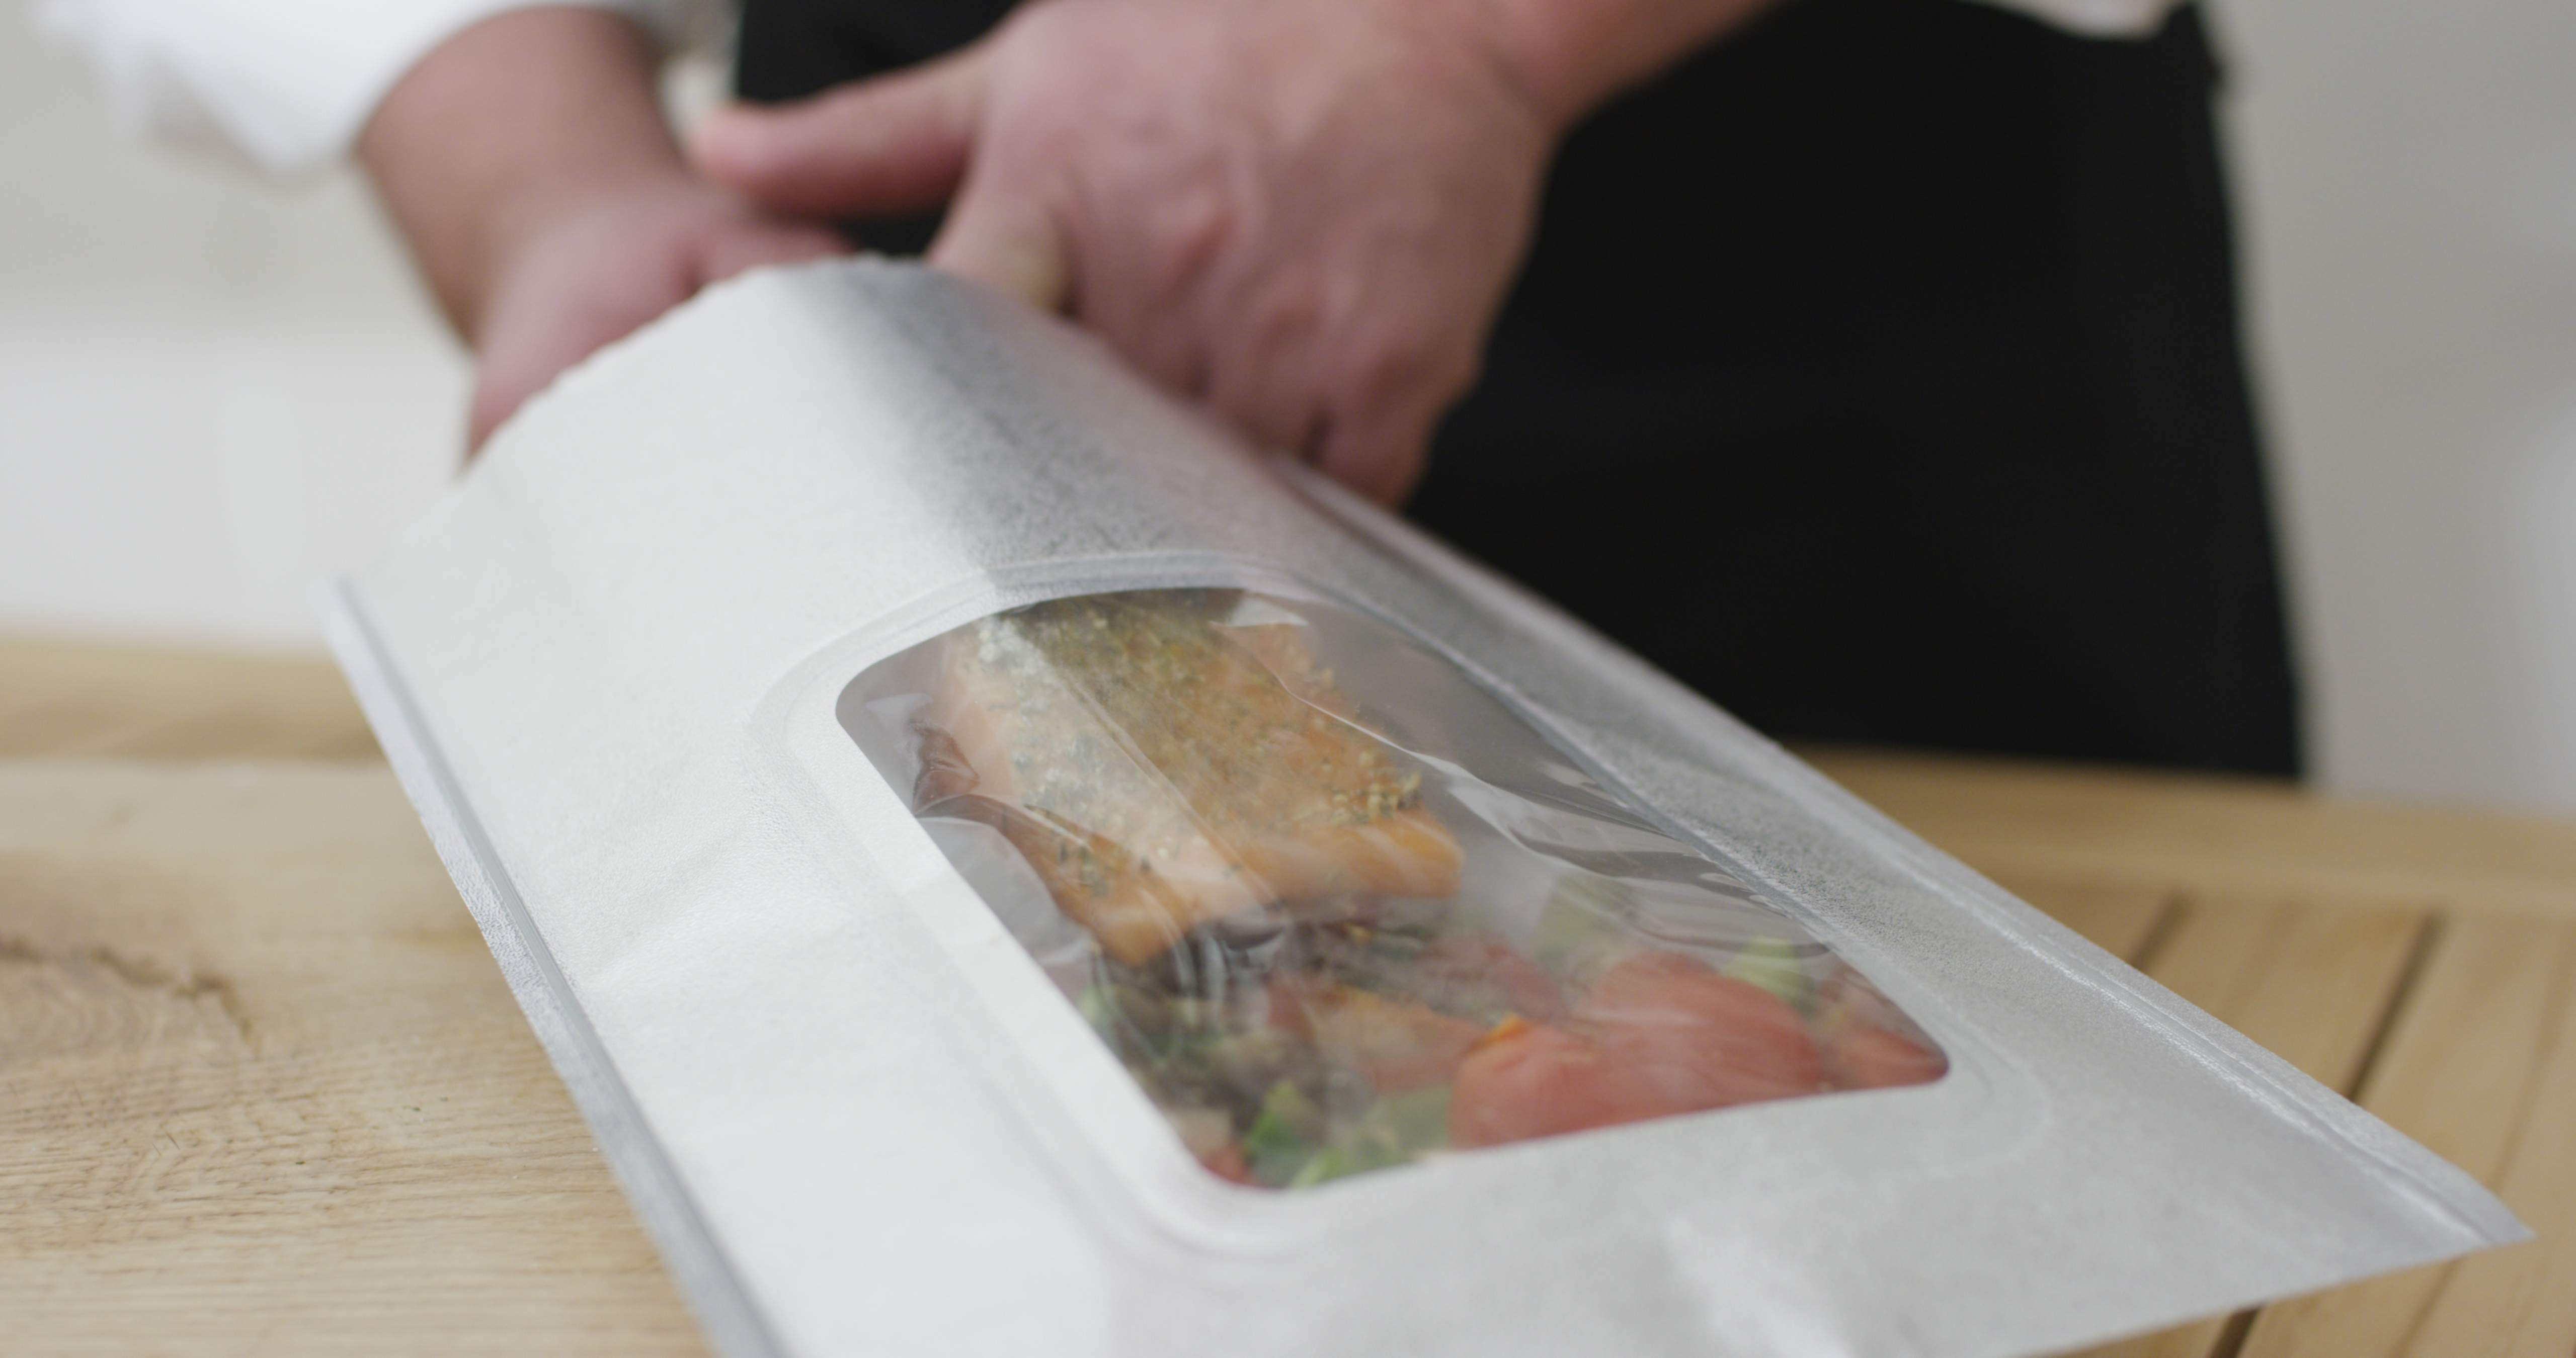 Lachs in Grillbag